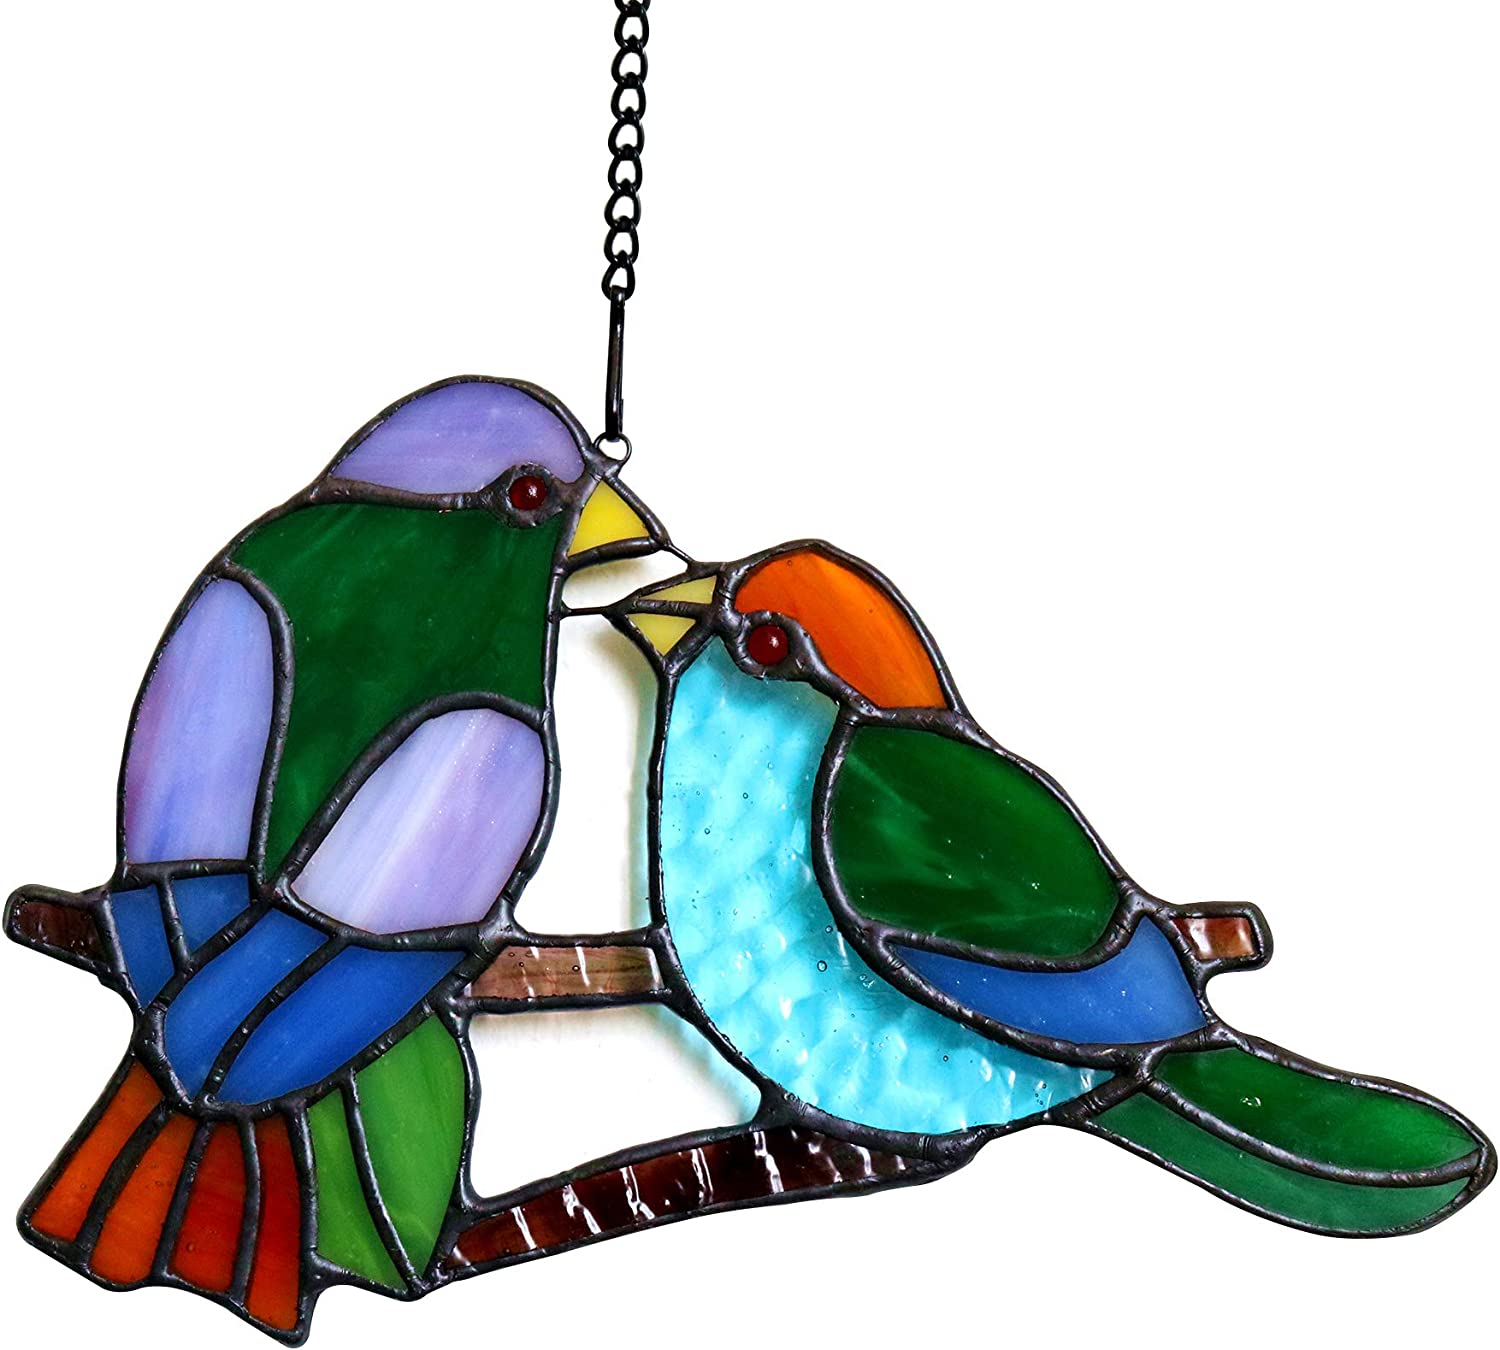 HAOSUM Lover Birds Tiffany Style Window Glass Recommendation O Stained High quality new Hangings